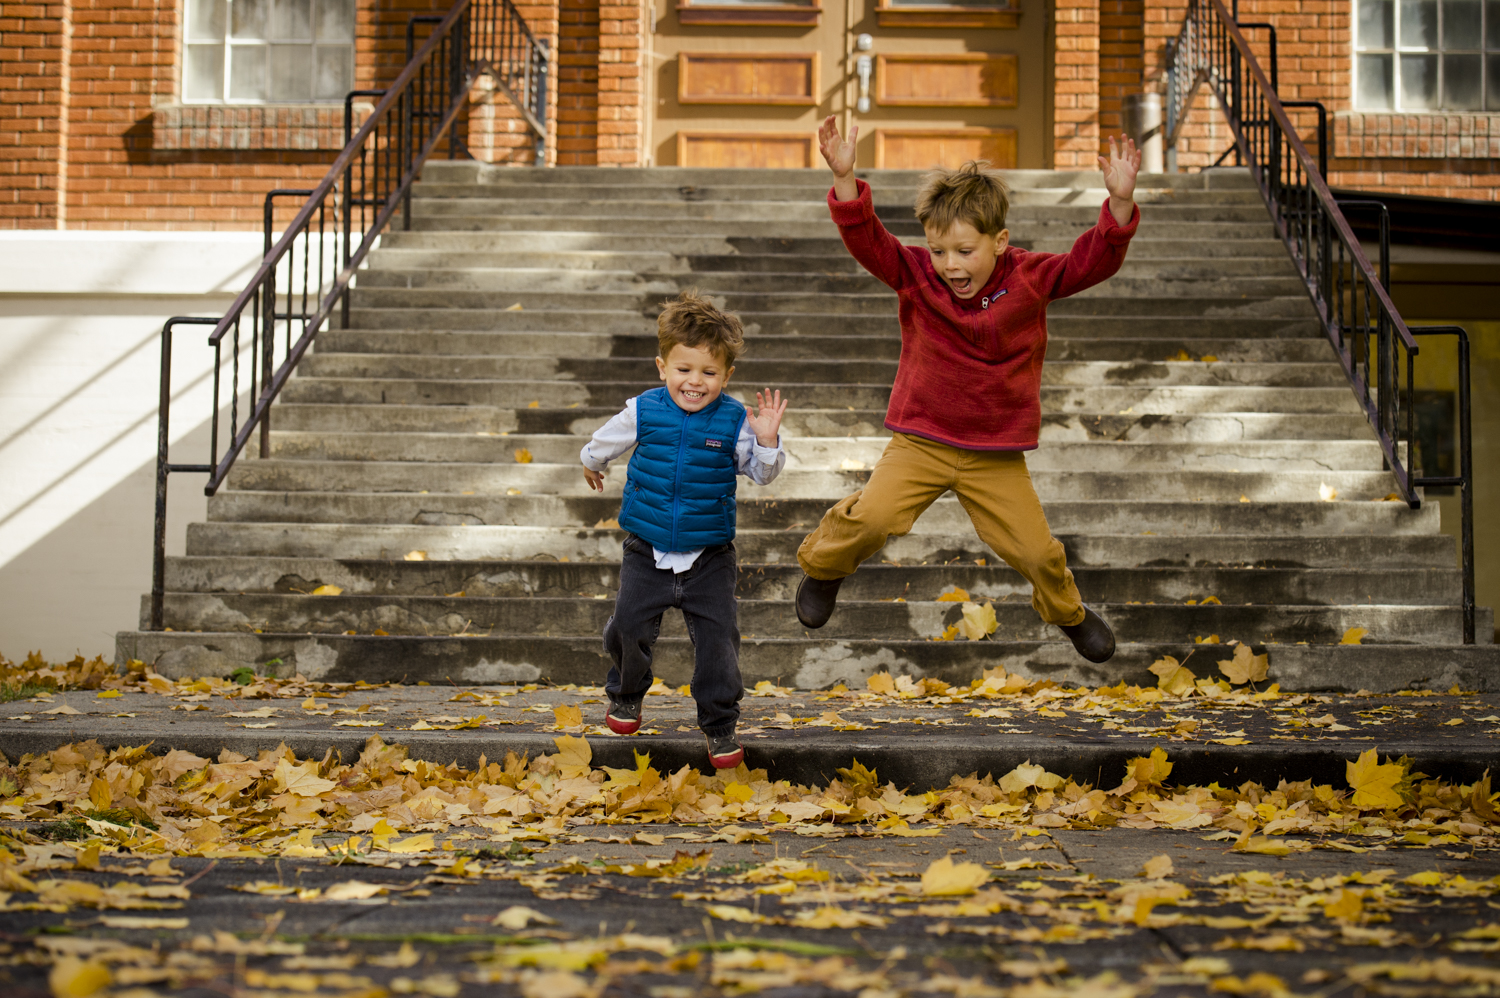 fall_lifestyle_family_leaves_candid_playing-008.jpg